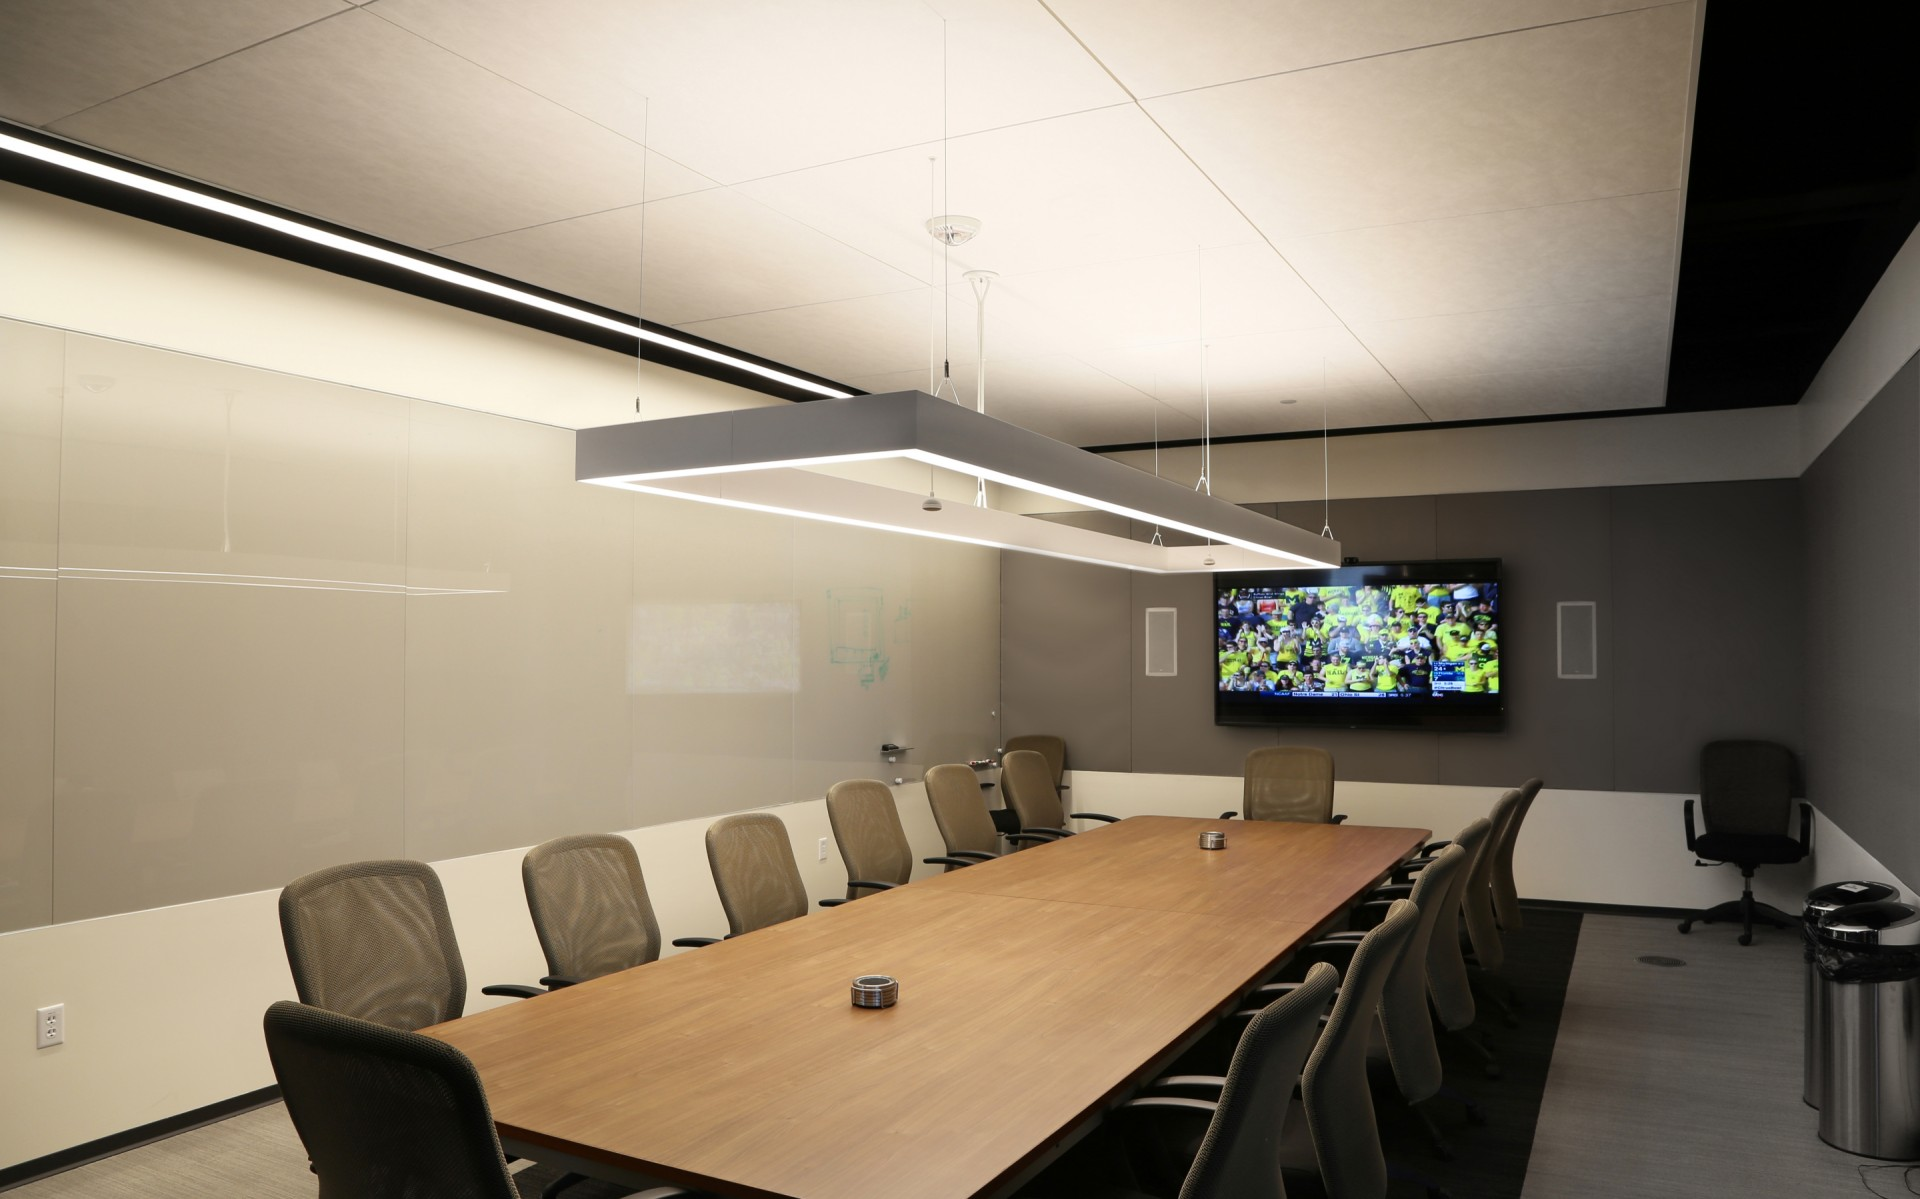 This allows the company to change the look and feel of the room, as needed.